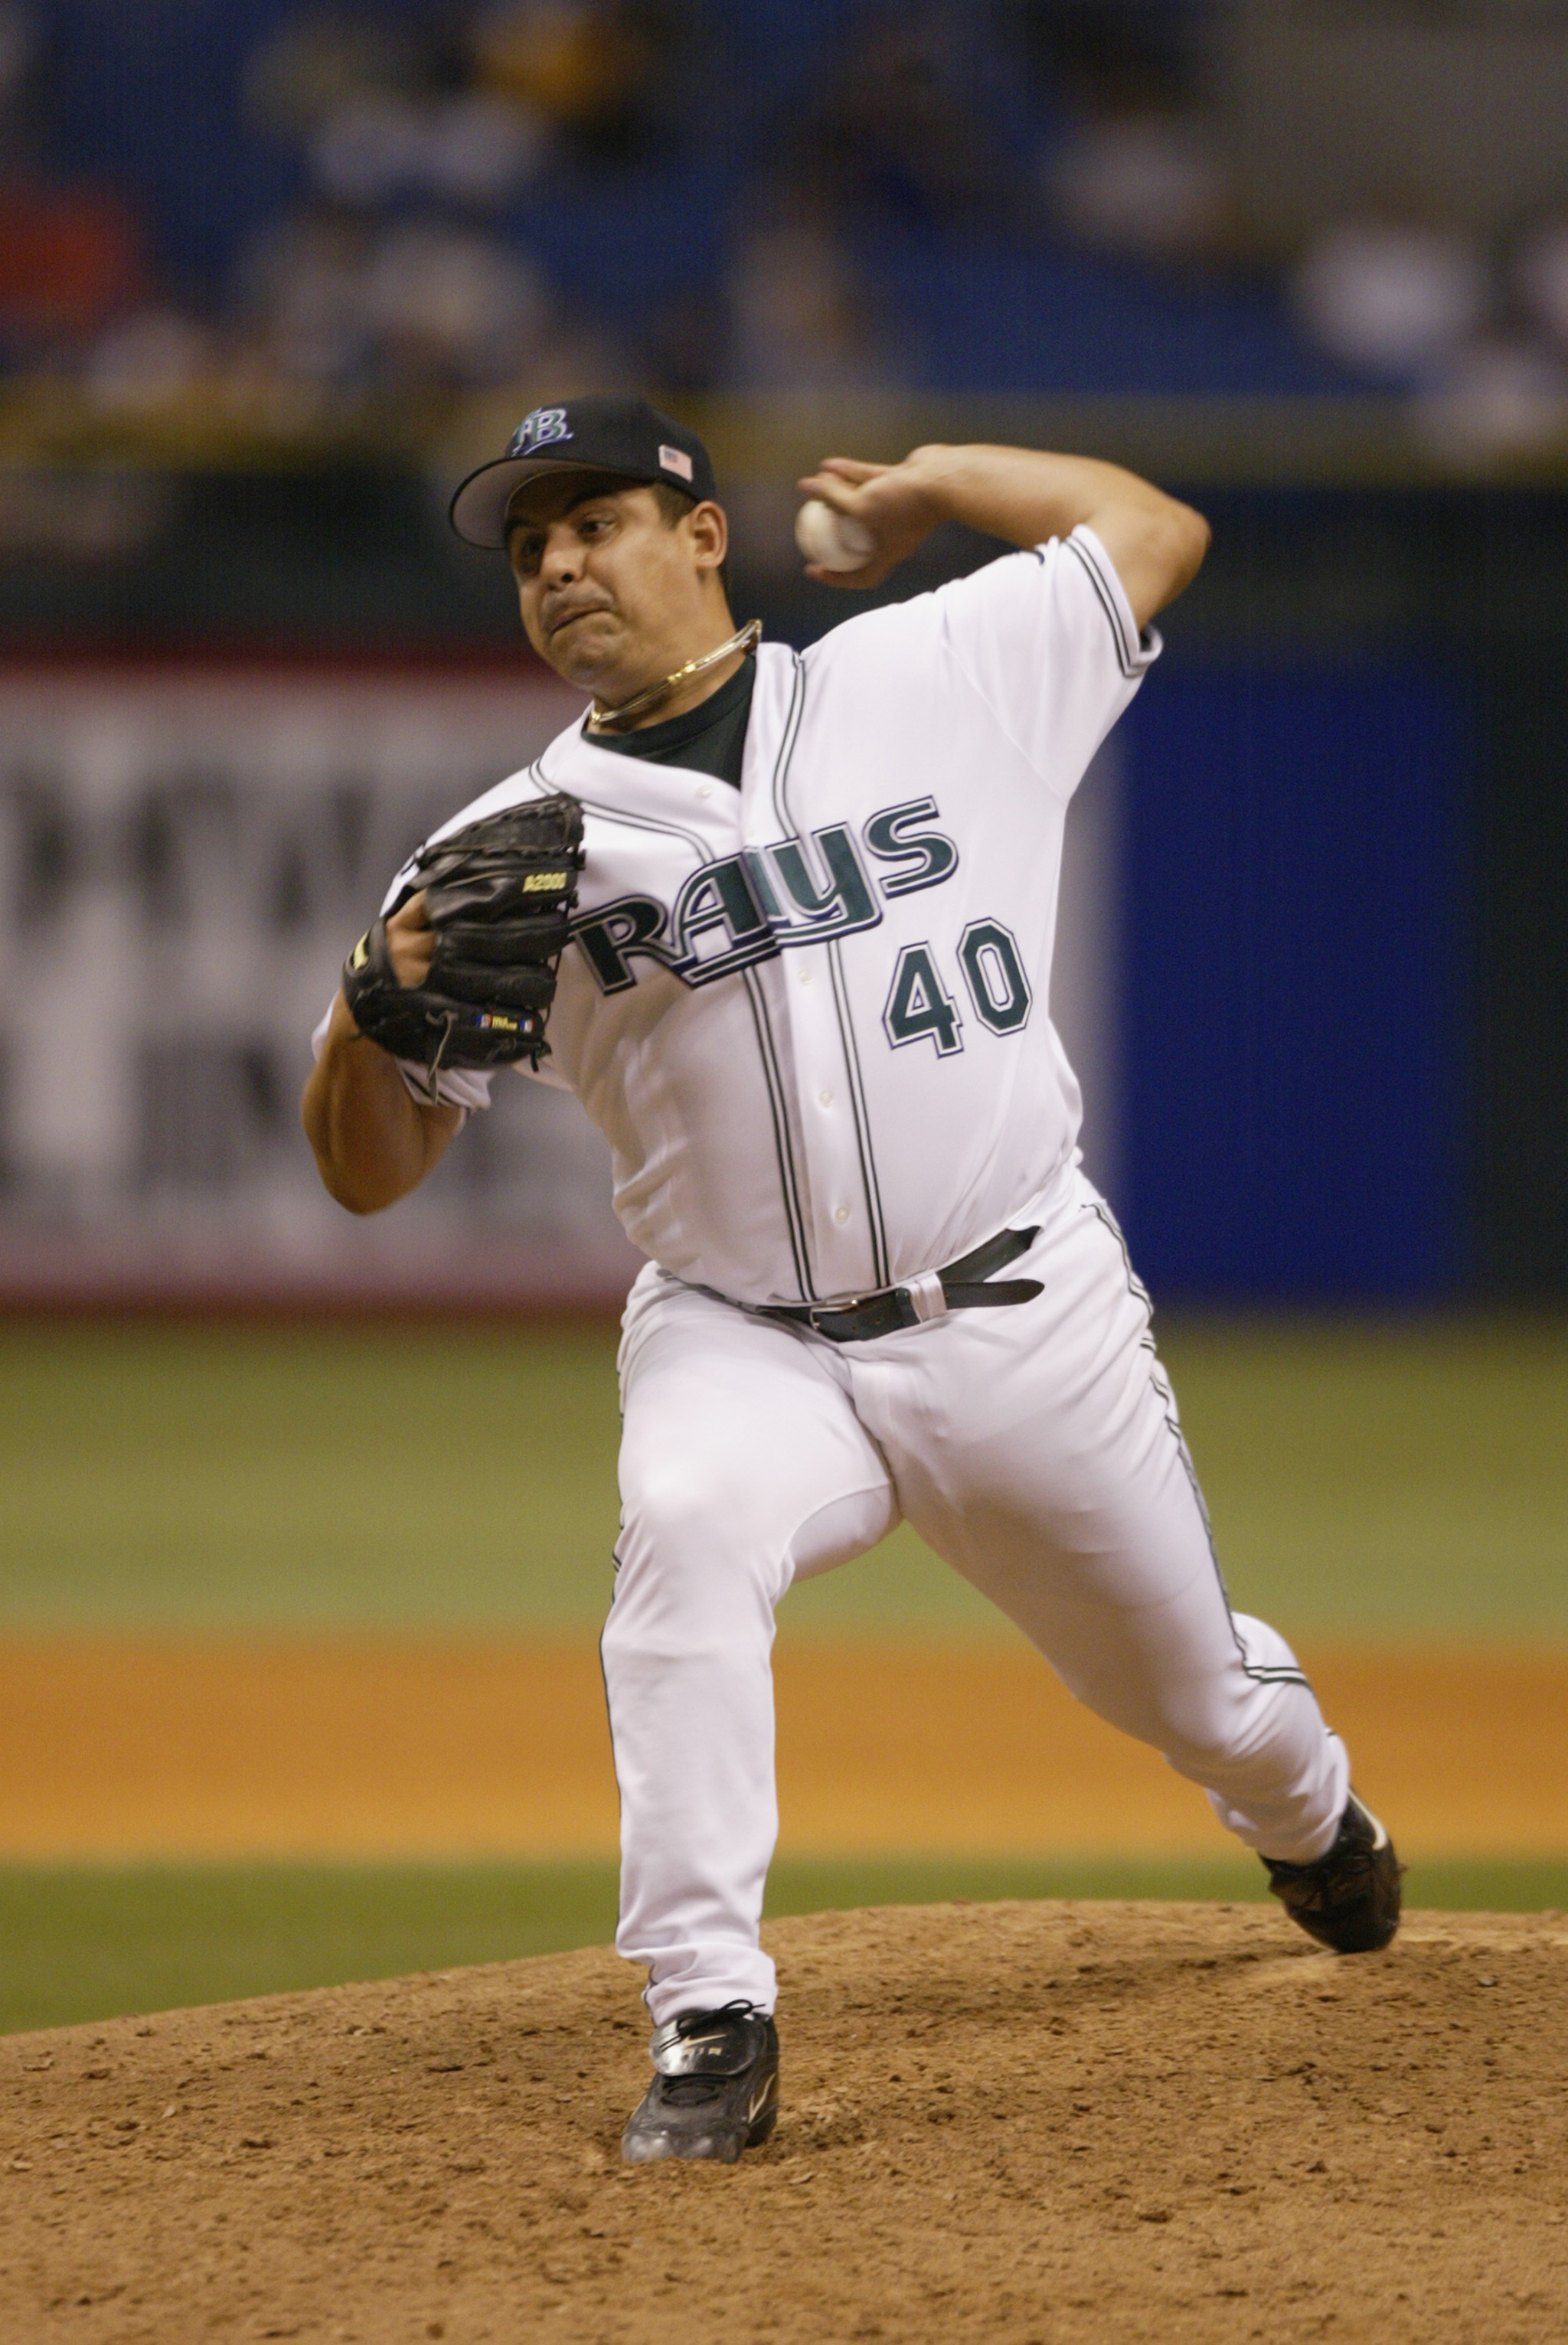 ST.PETERSBURG, FL - SEPTEMBER 11:  Pitcher Wilson Alvarez #40 of the Tampa Bay Devil Rays throws a pitch against the Boston Red Sox during the game on September 11, 2002 at Tropicana Field in St. Petersburg, Florida.  The Red Sox won 6-3. (Photo by Andy L